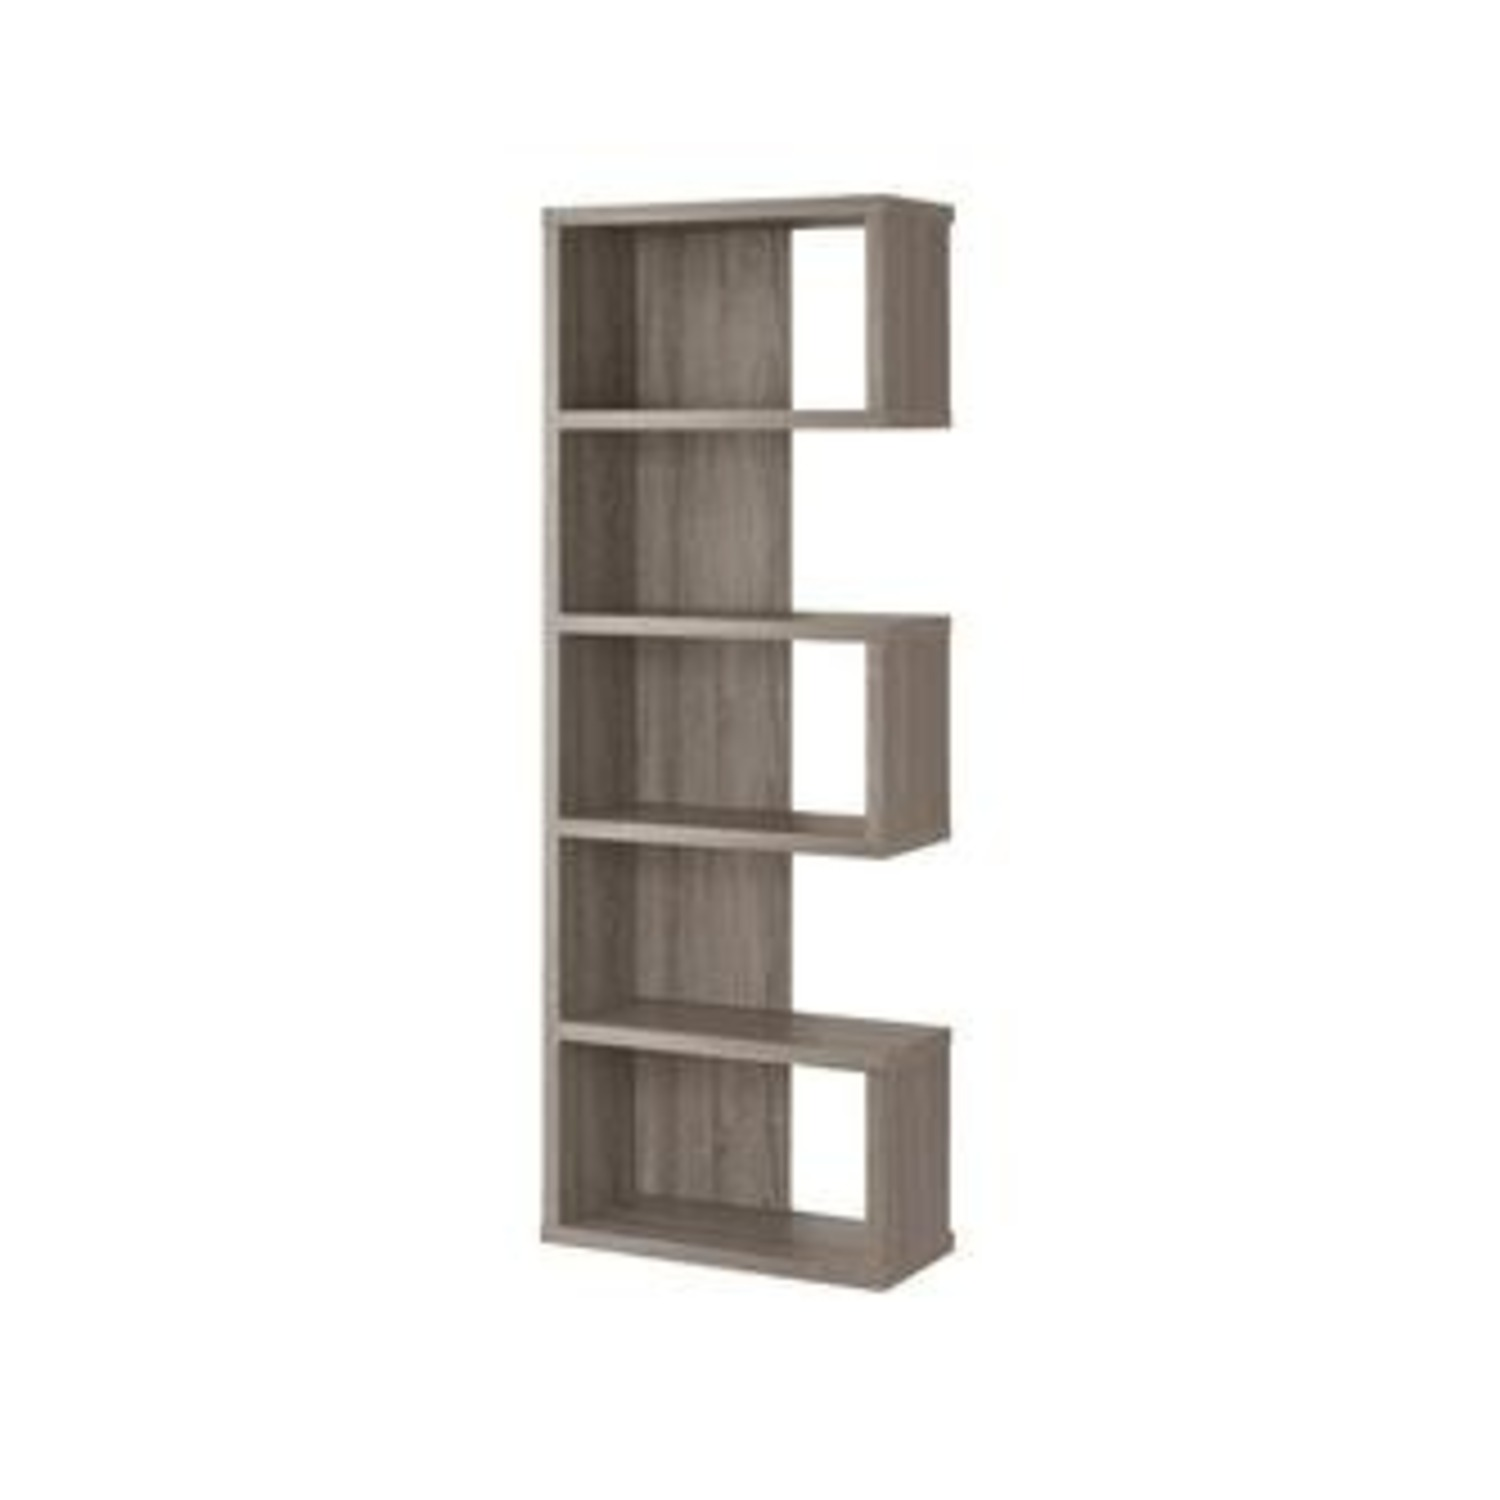 Weathered Grey Bookcase w/ box and open Shelves